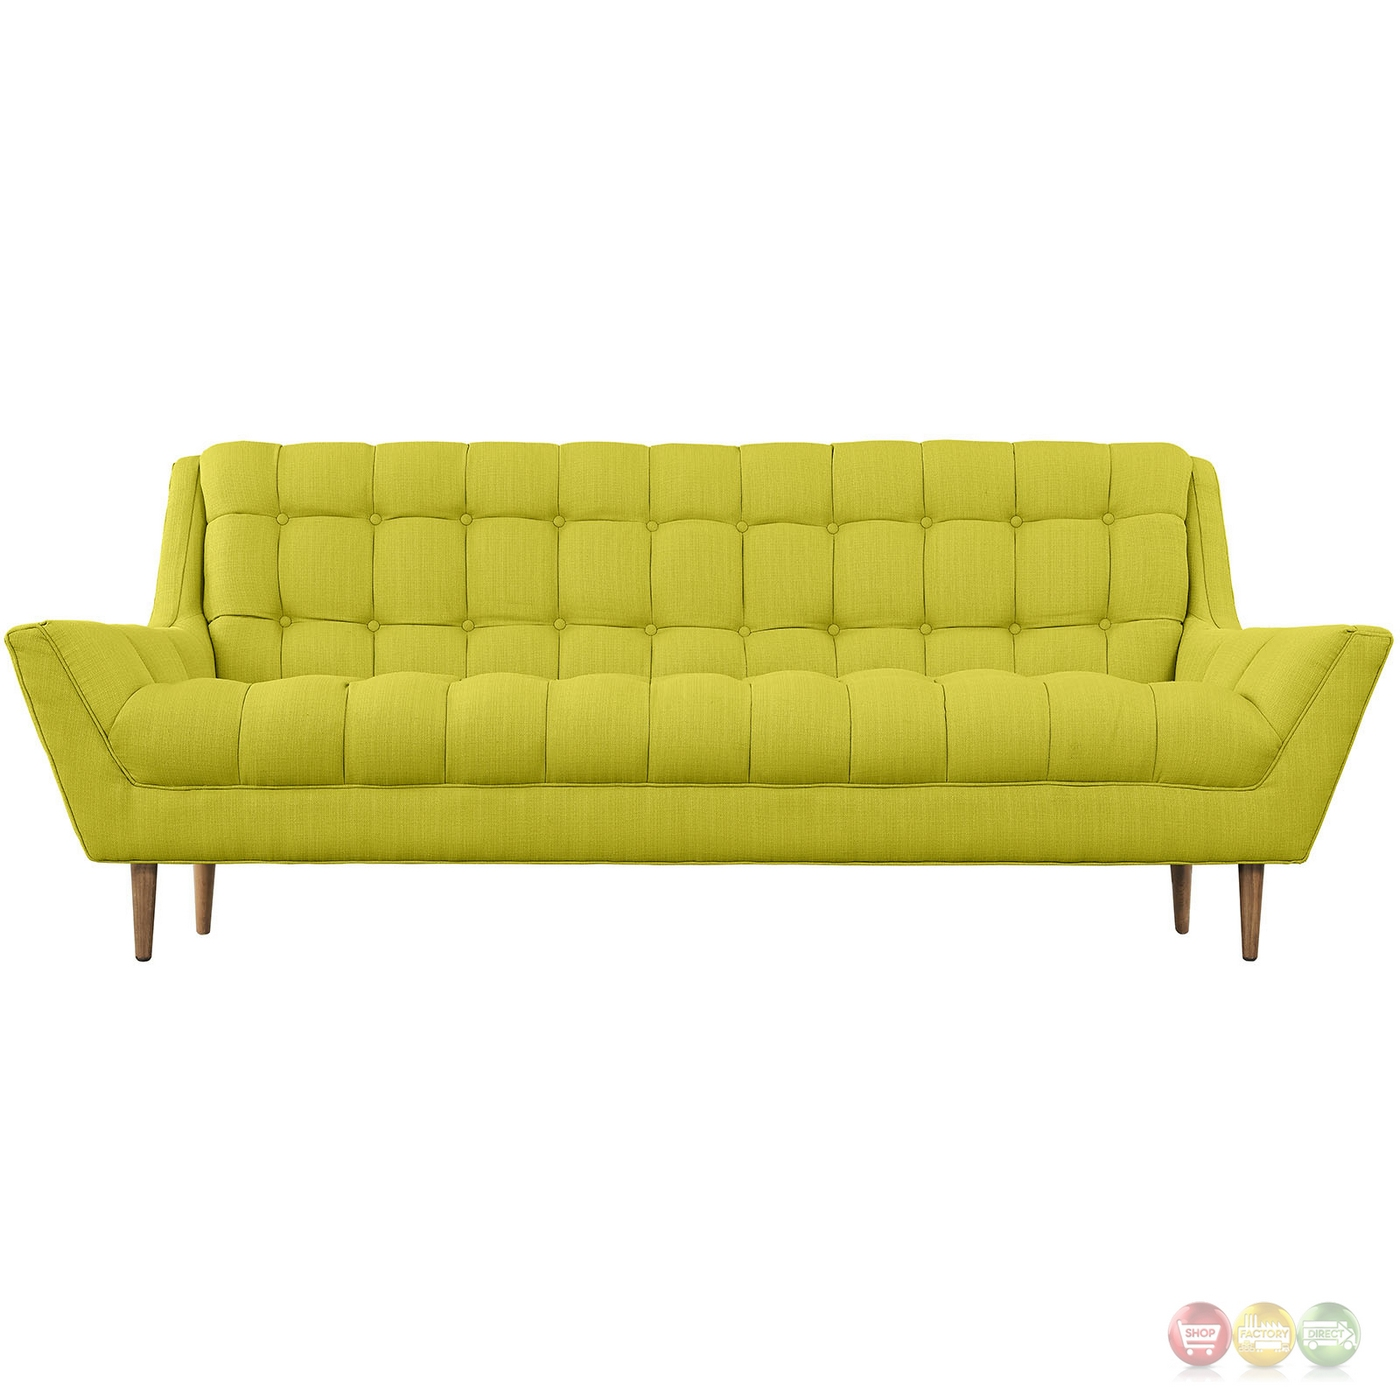 button tufted sofas recycling response contemporary upholstered sofa